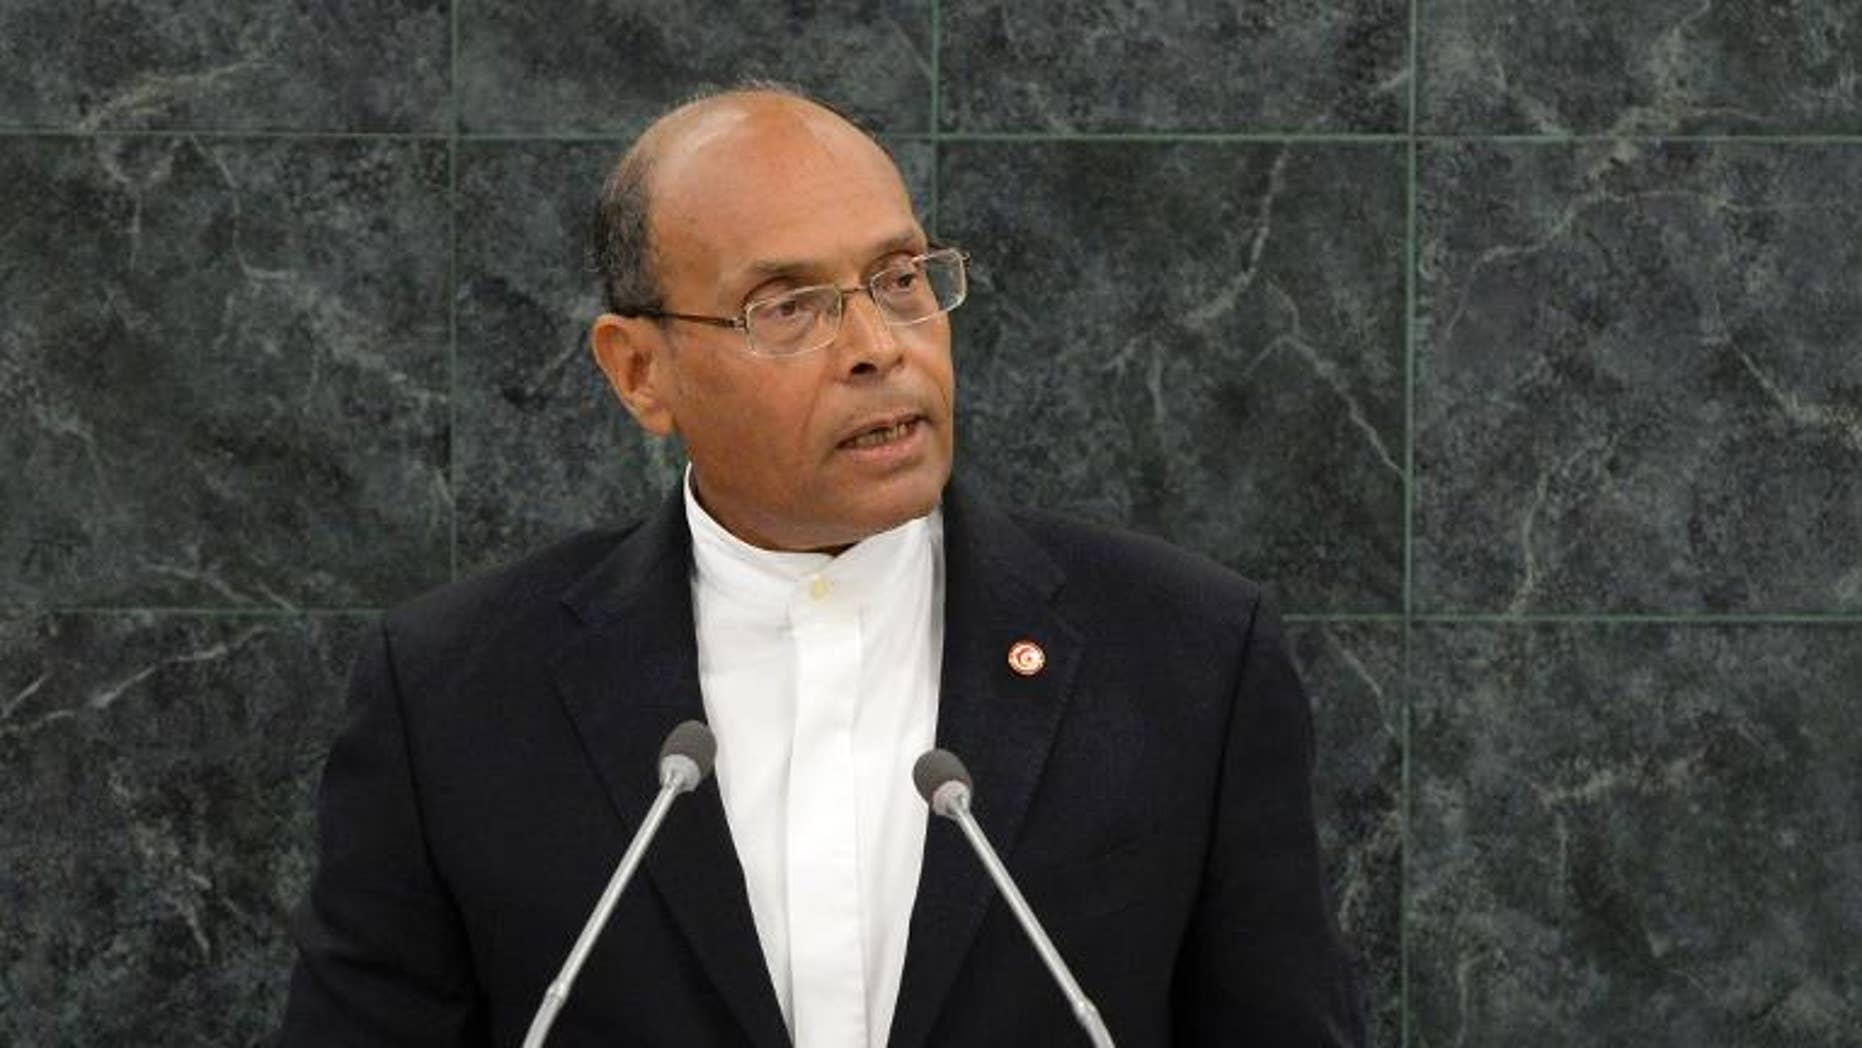 Tunisian president Mohamed Moncef Marzouki addresses the UN General Assembly at the UN headquarters in New York, on September 26, 2013